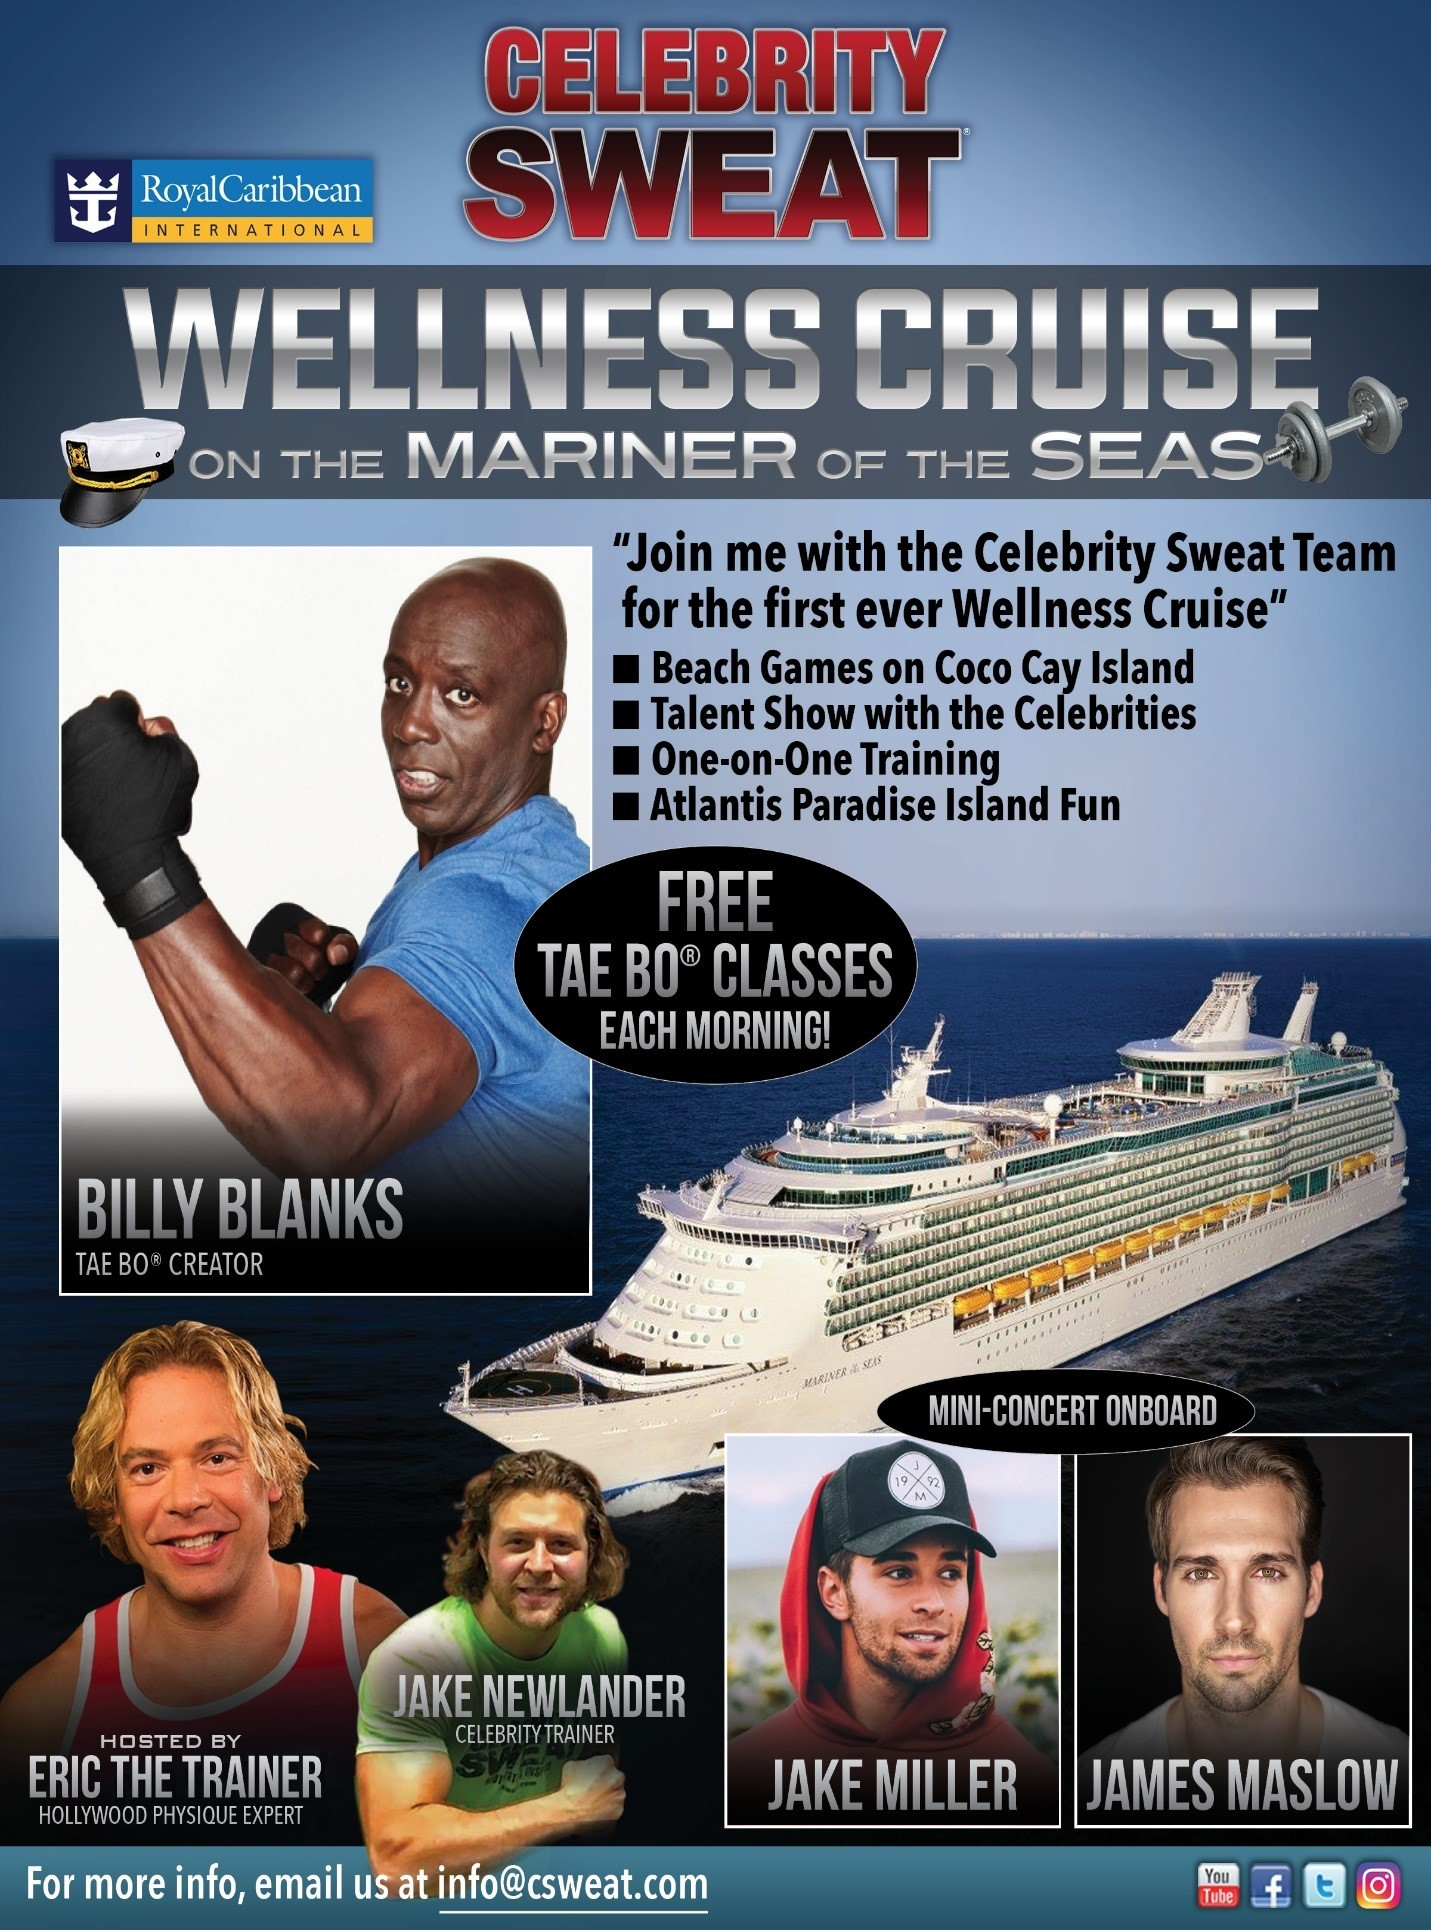 Charitybuzz Sail The Bahamas On The Celebrity Sweat Cruise With